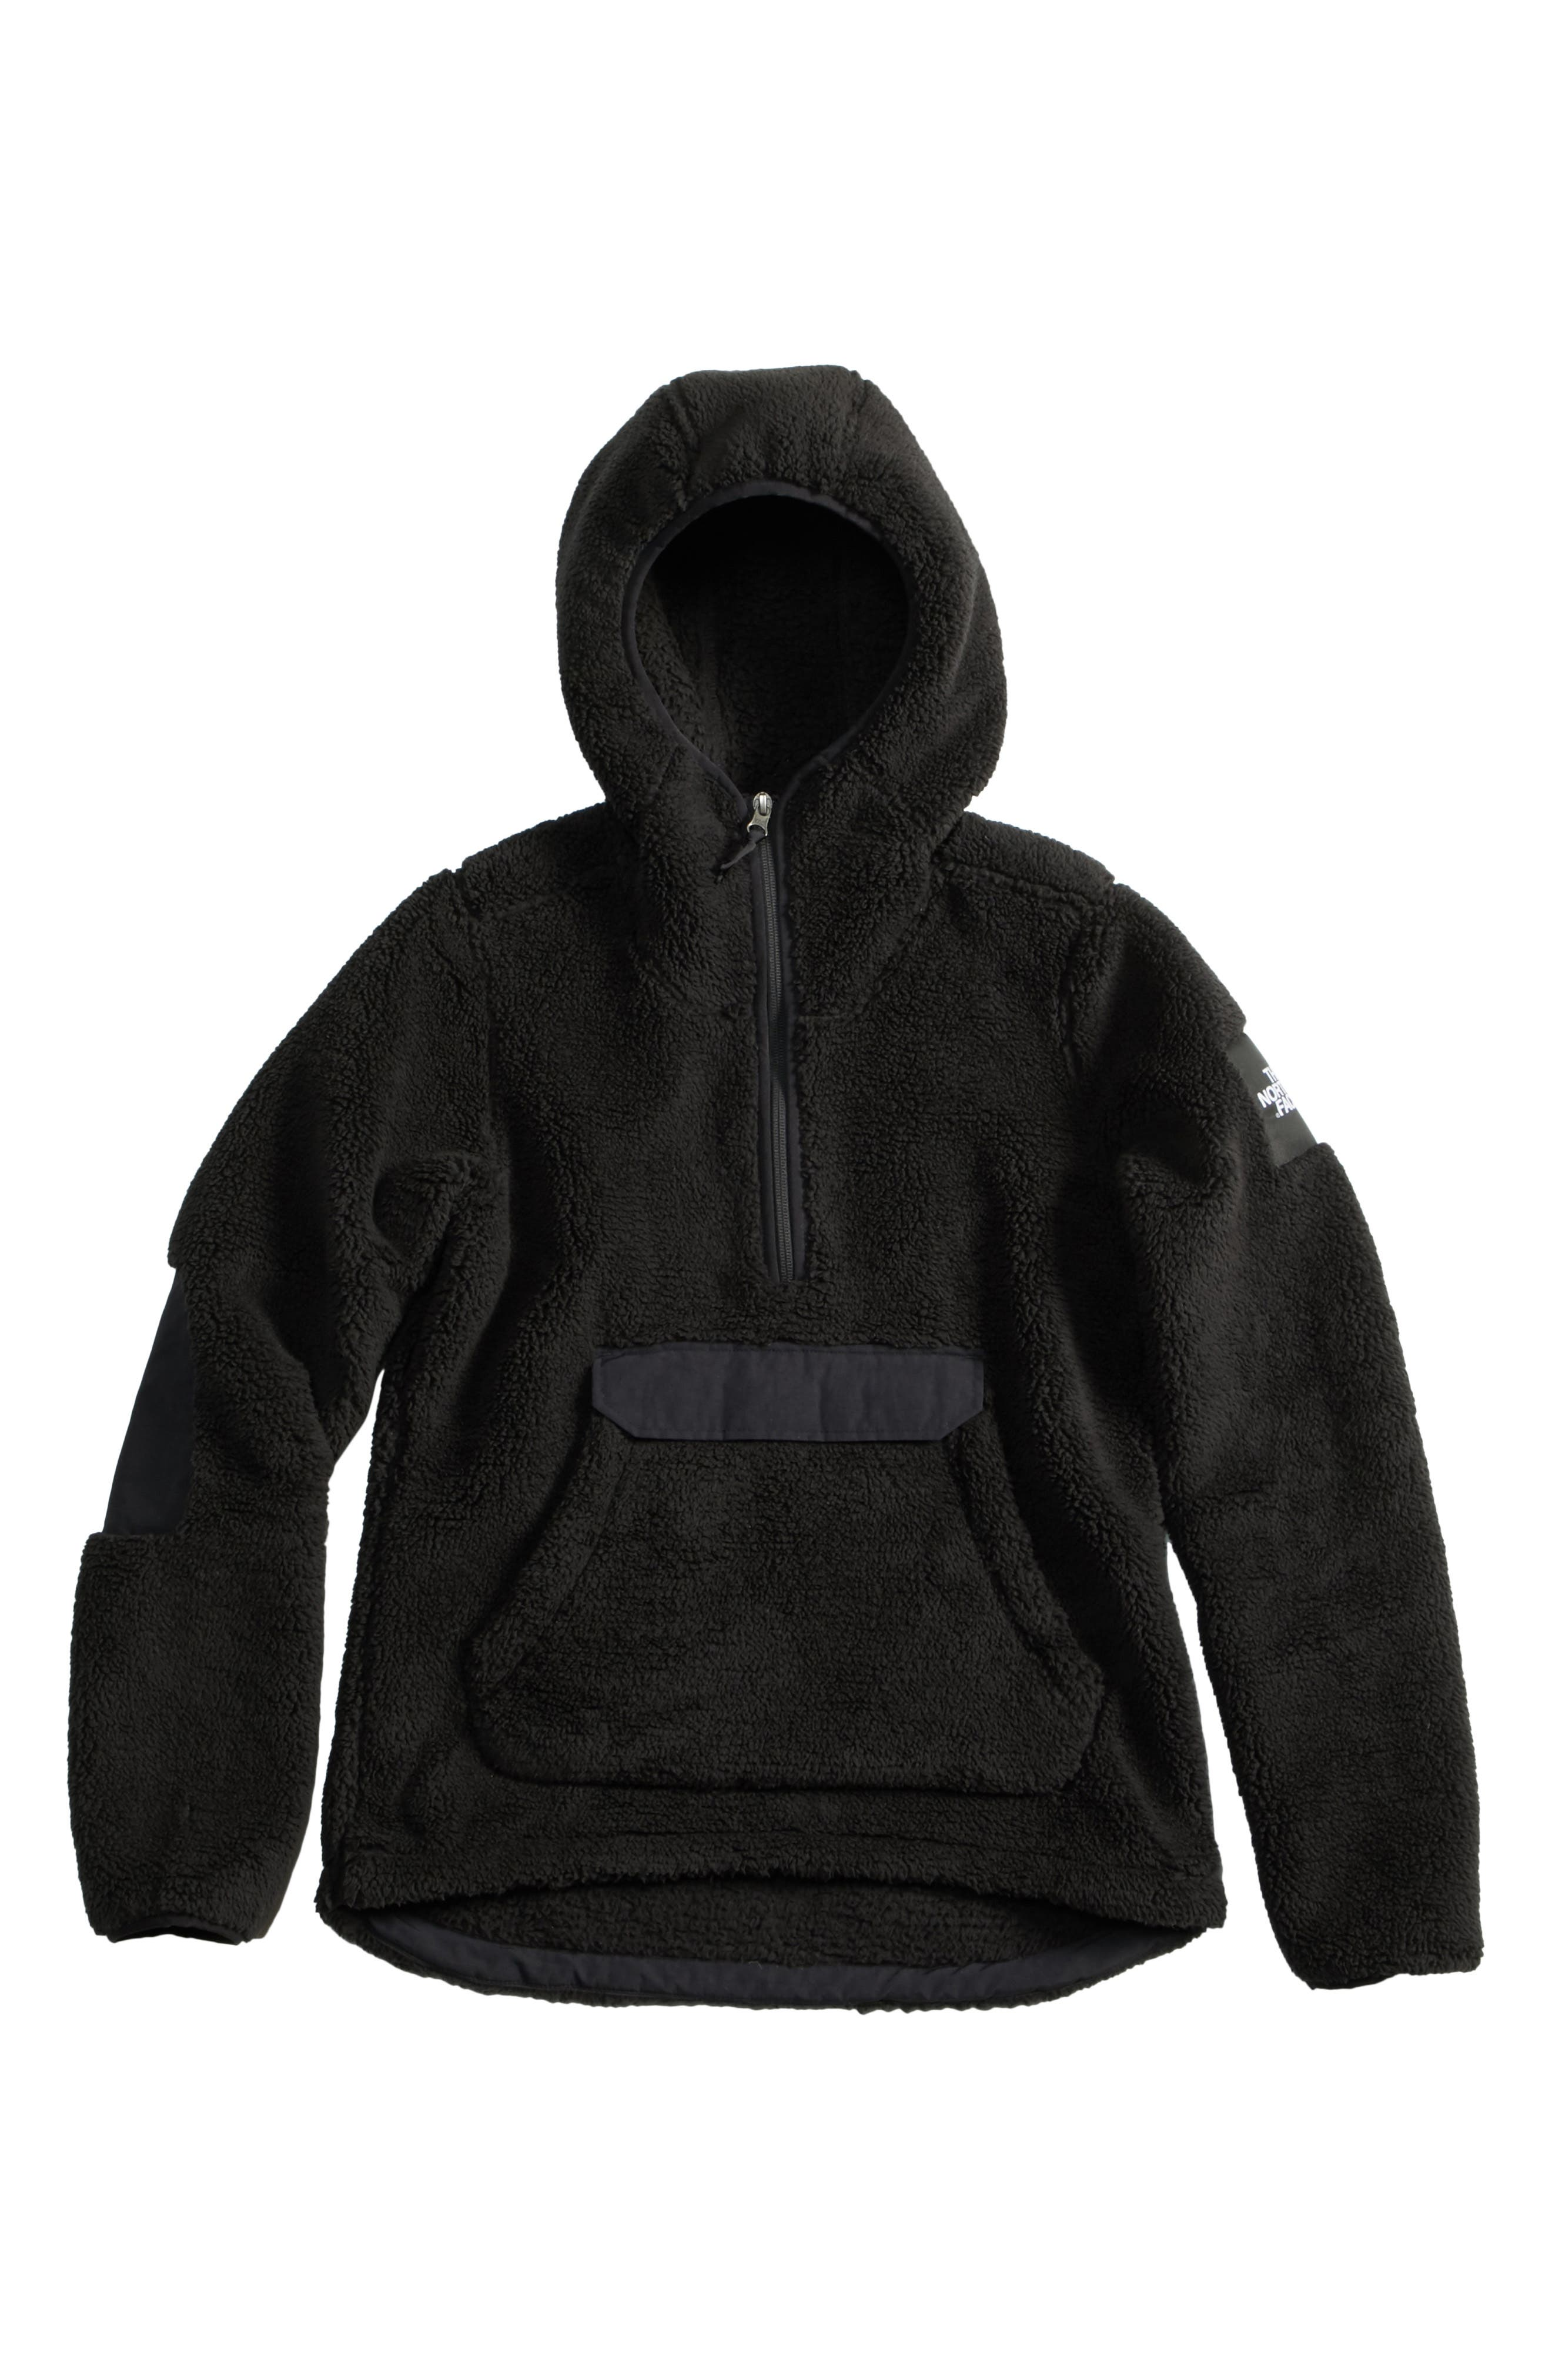 Main Image - The North Face Campshire High Pile Fleece Pullover Hoodie